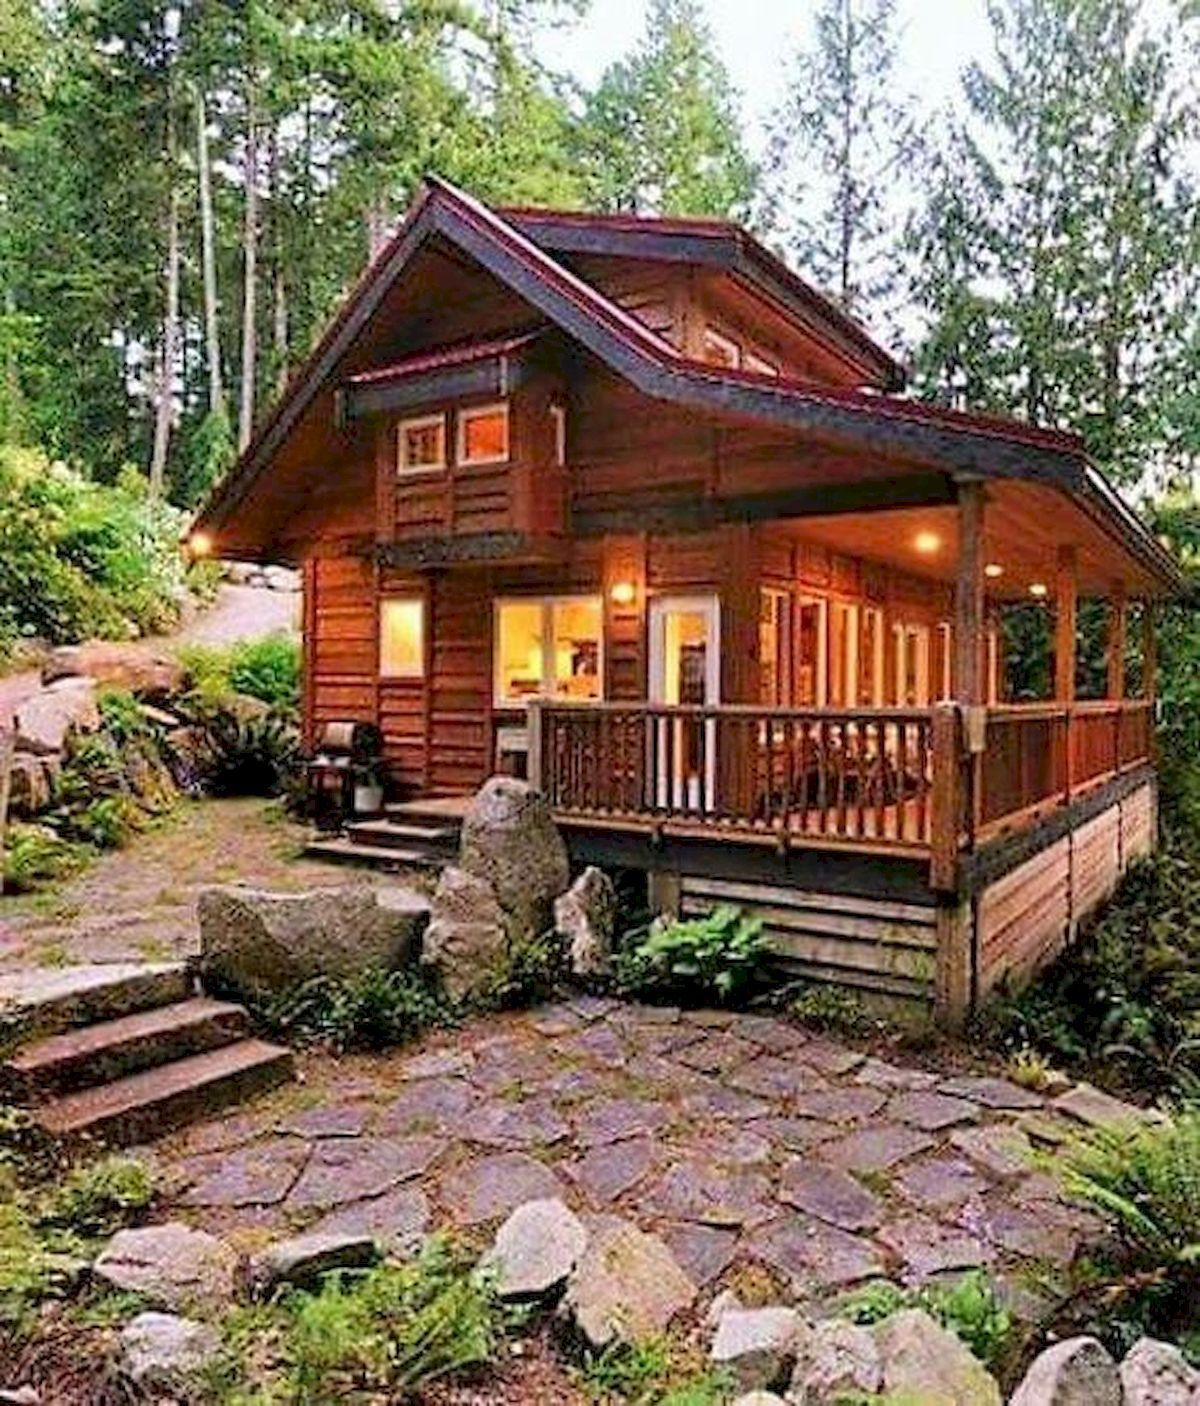 Trailer Home Designs Ideas Currently Permit S Locate 20 Remarkable Minimalist Houses Design Each One As Fascinat In 2020 Small Log Cabin Log Cabin Homes Cabin Homes